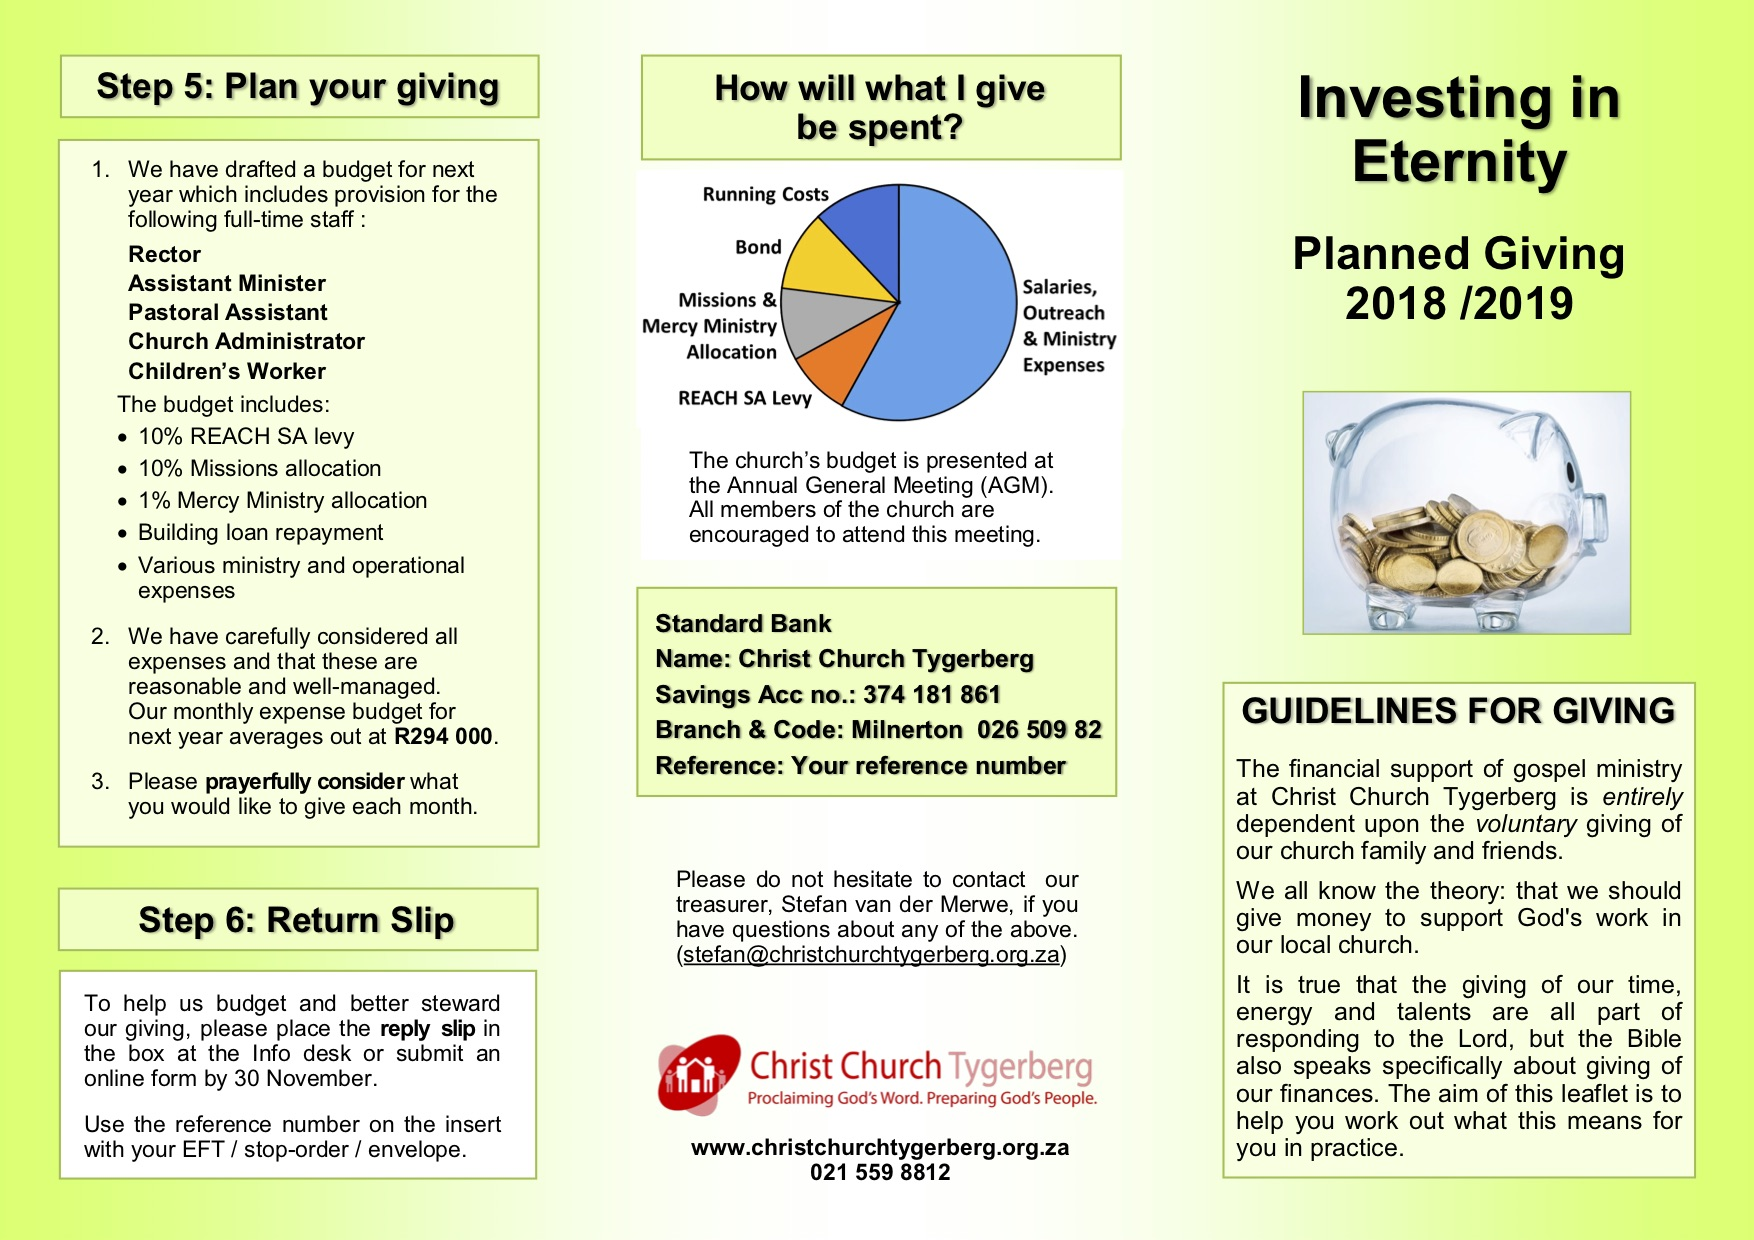 CCT Planned Giving 2018 2019 2